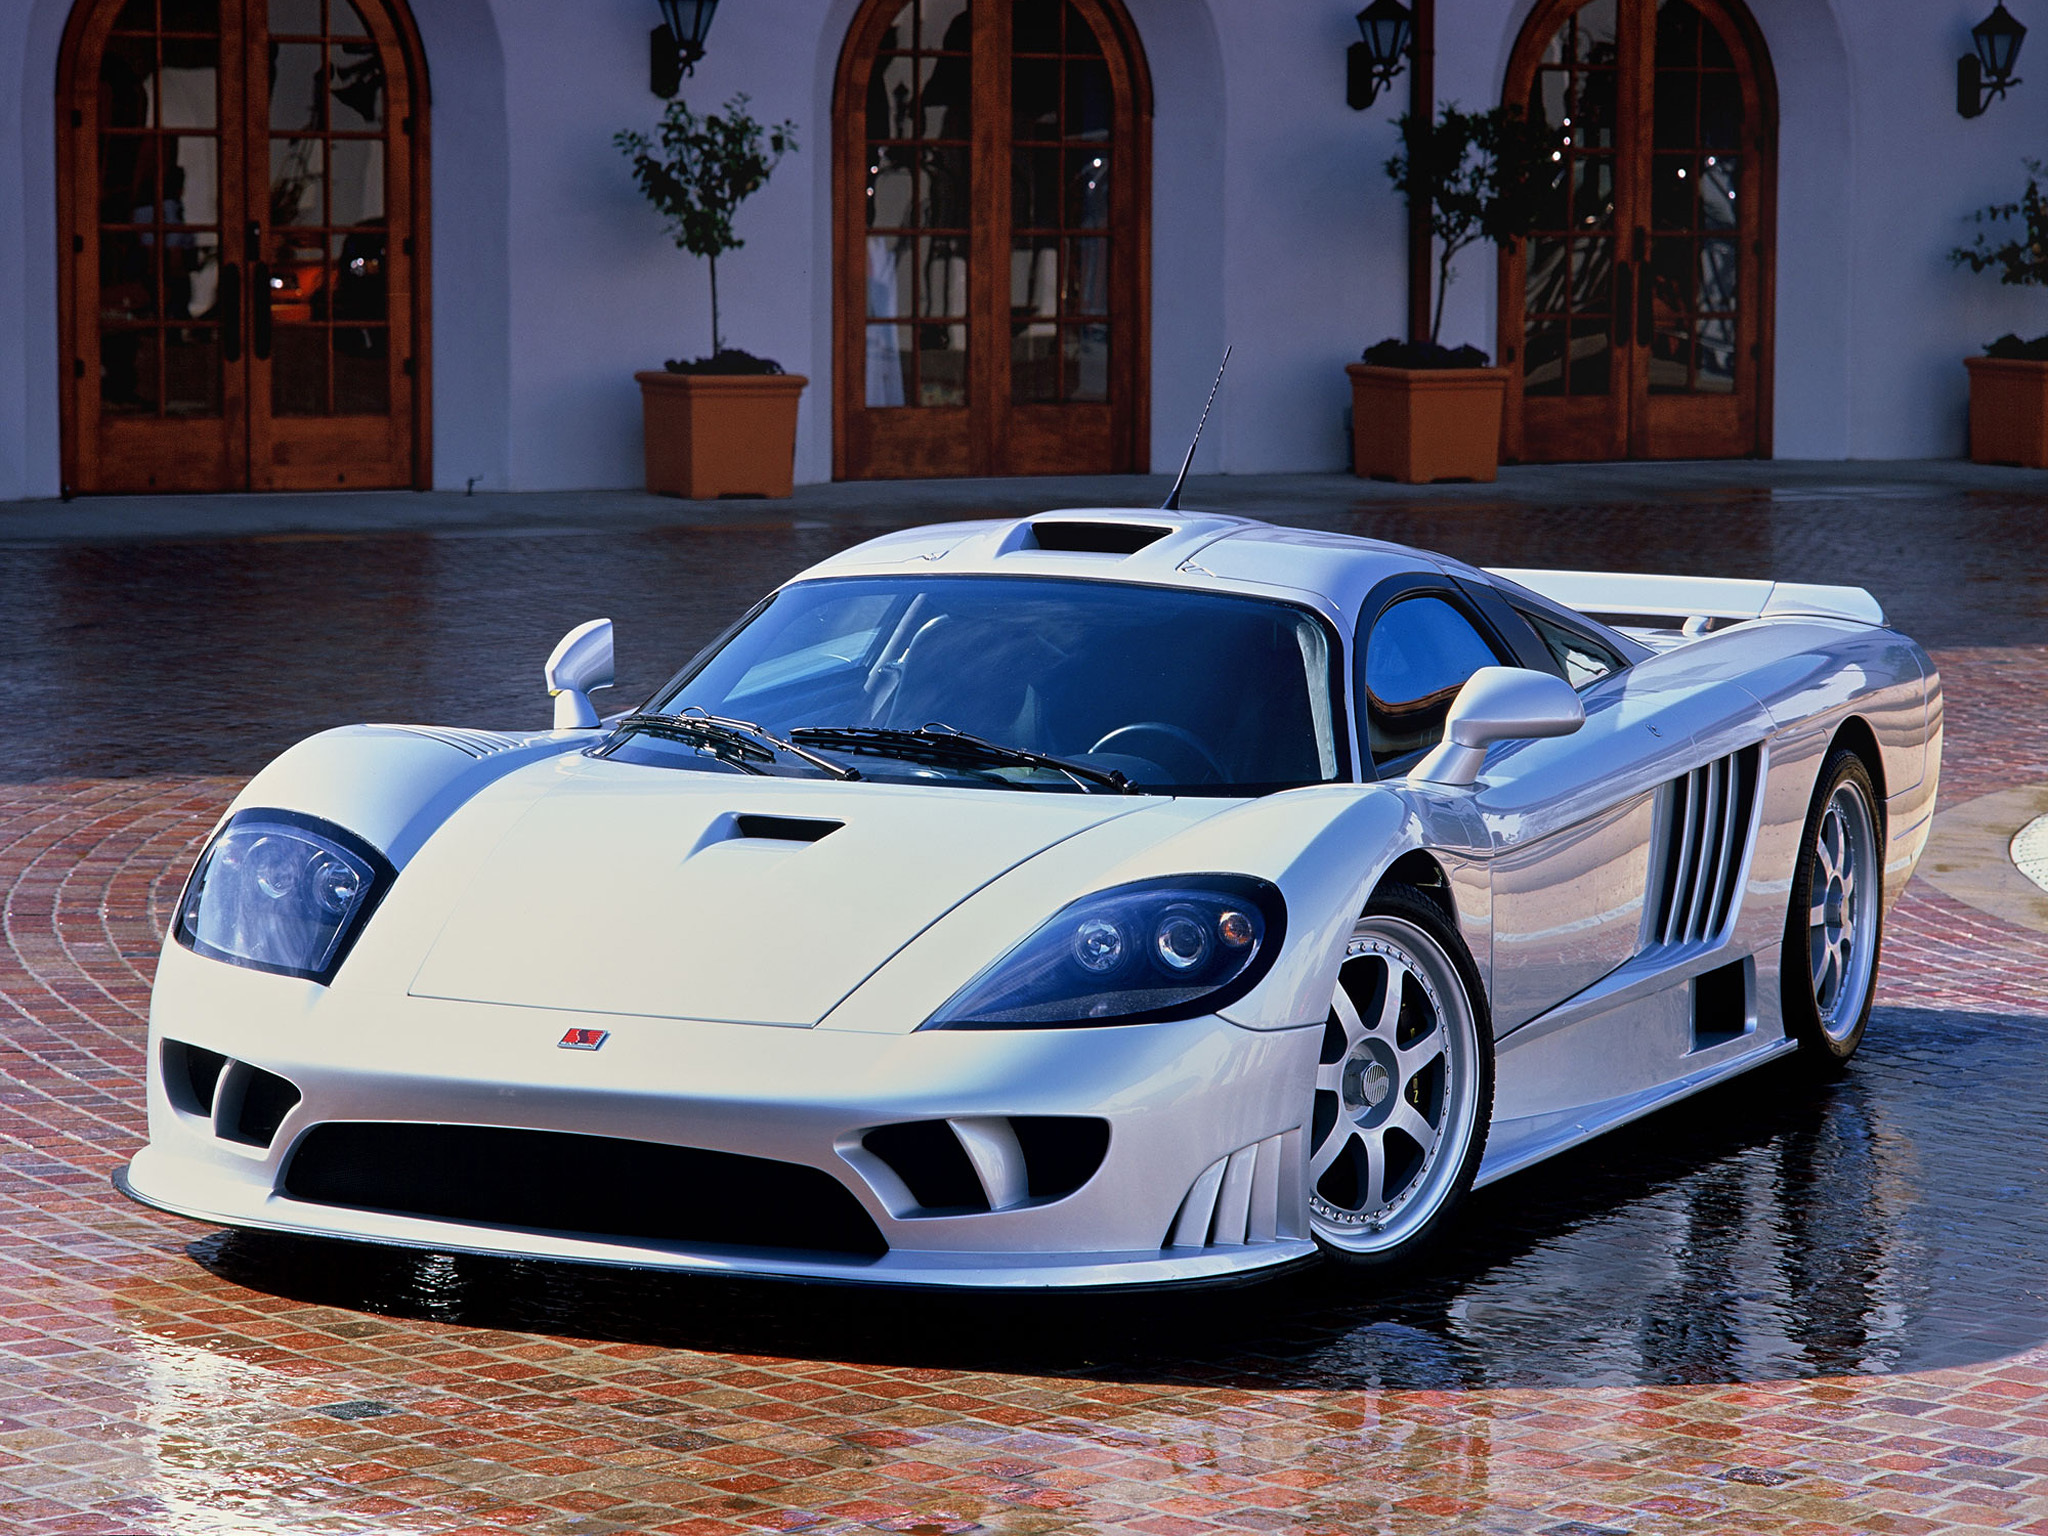 81069 free wallpaper 1080x2400 for phone, download images Cars, Front View, Saleen, S7 1080x2400 for mobile